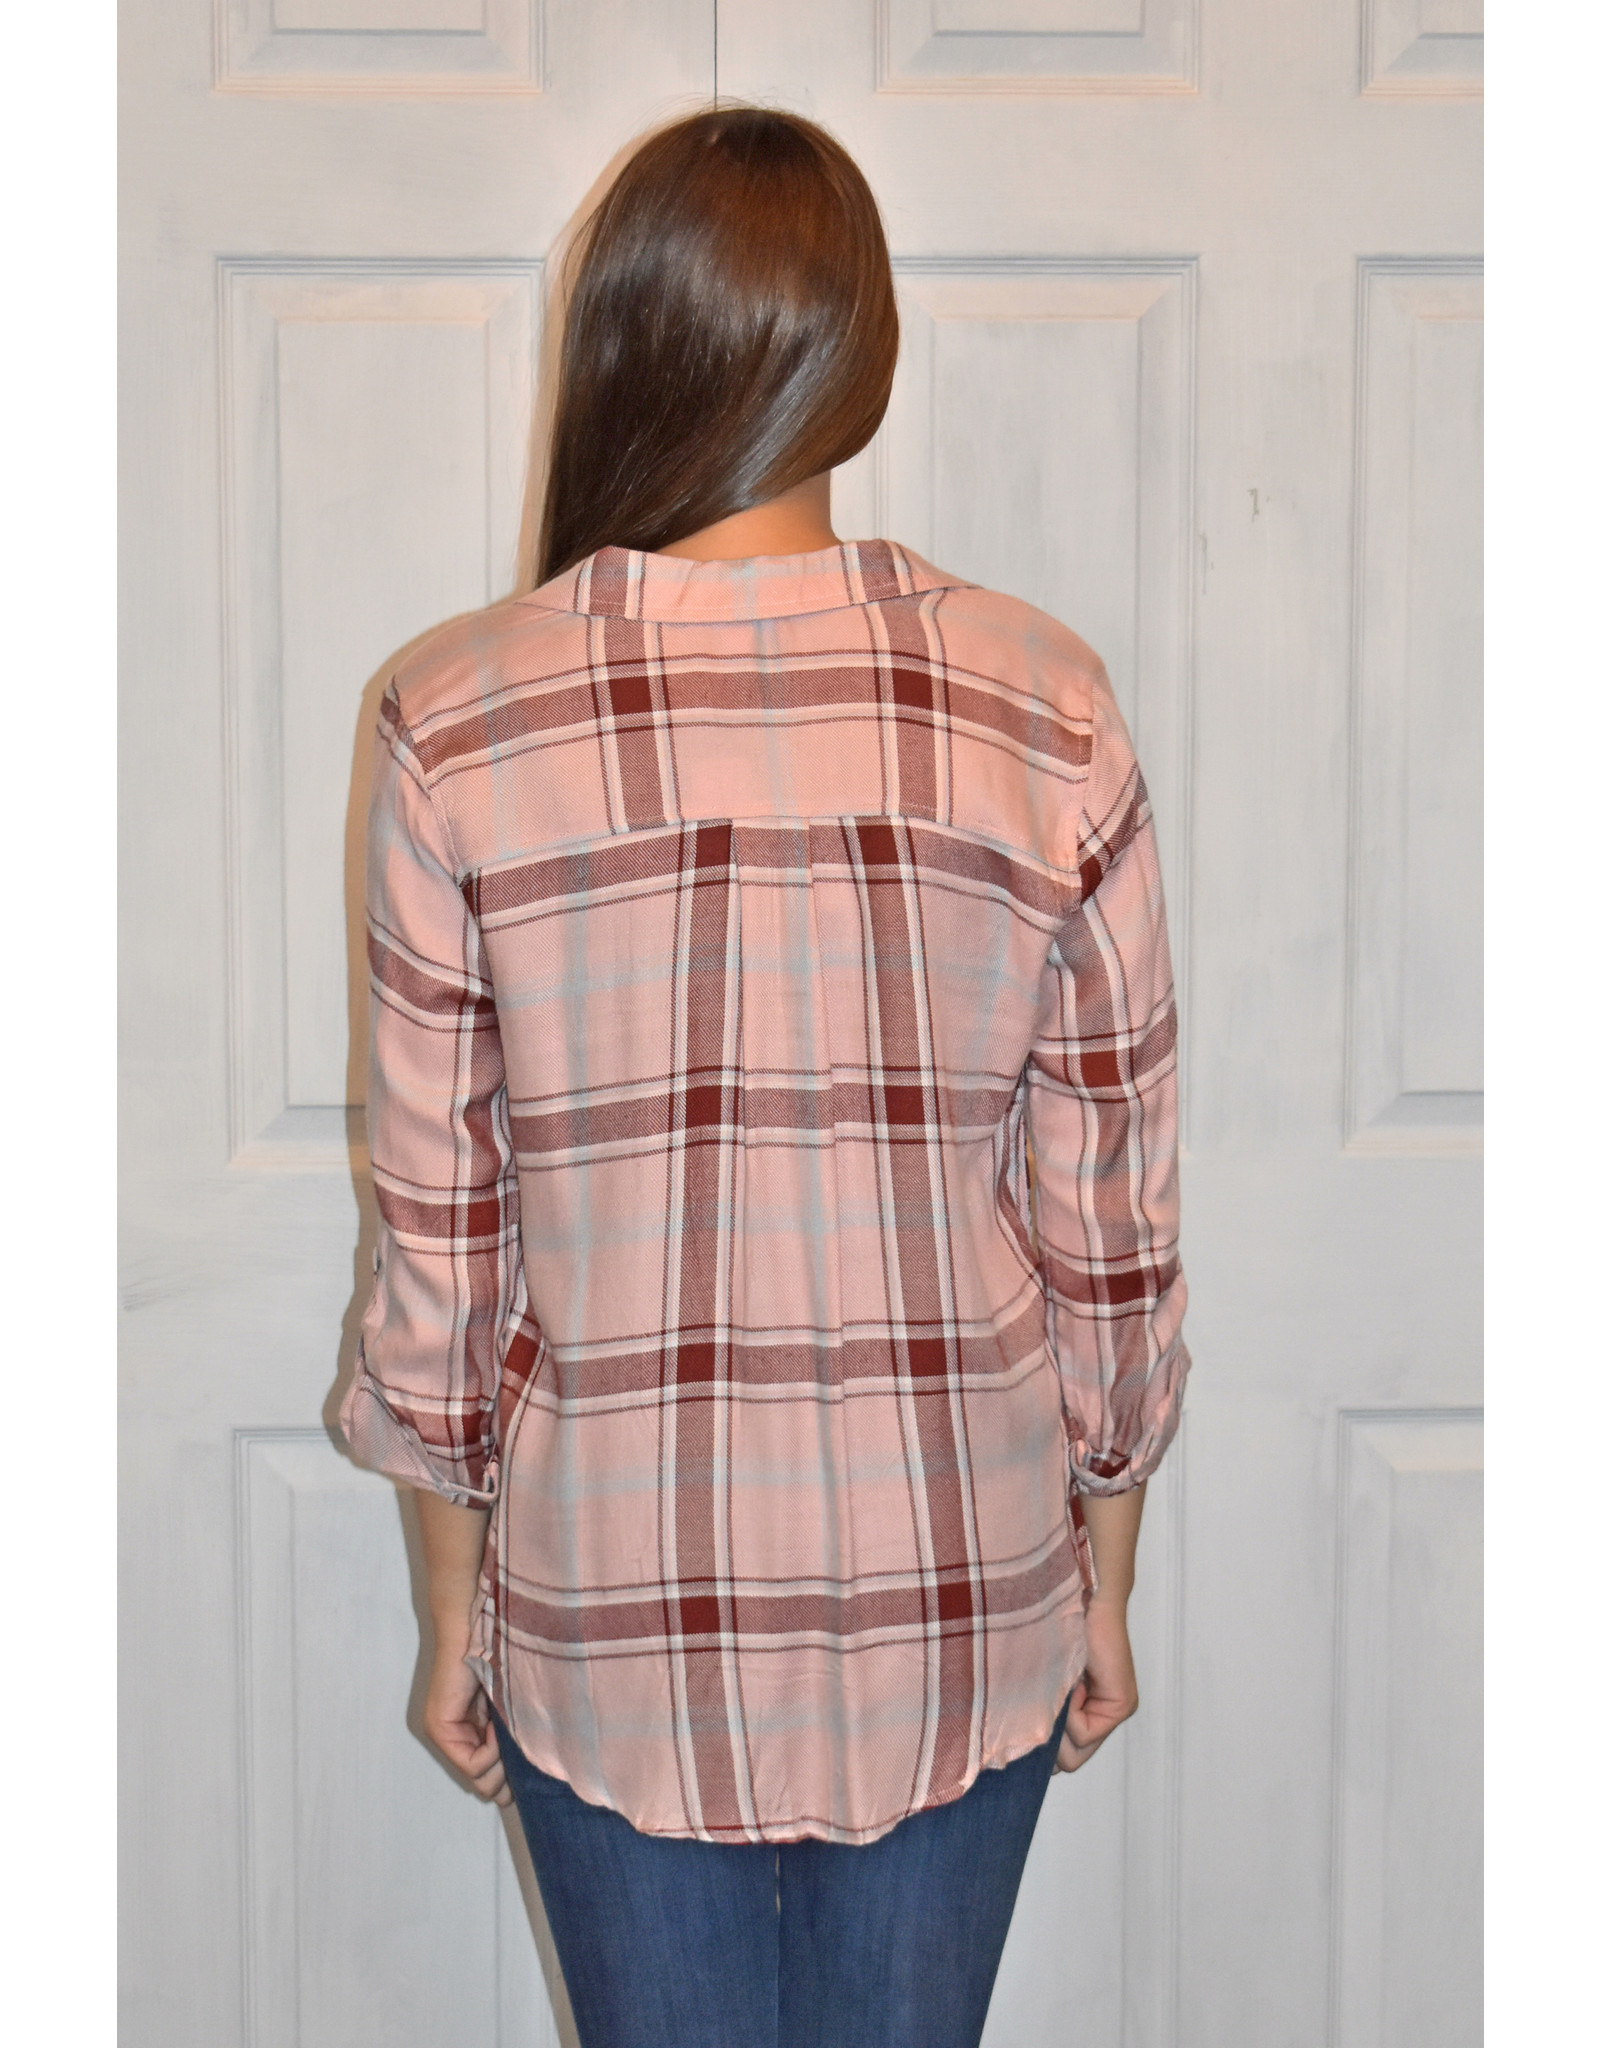 Lyla's: Clothing, Decor & More All I Know Pink Plaid Top